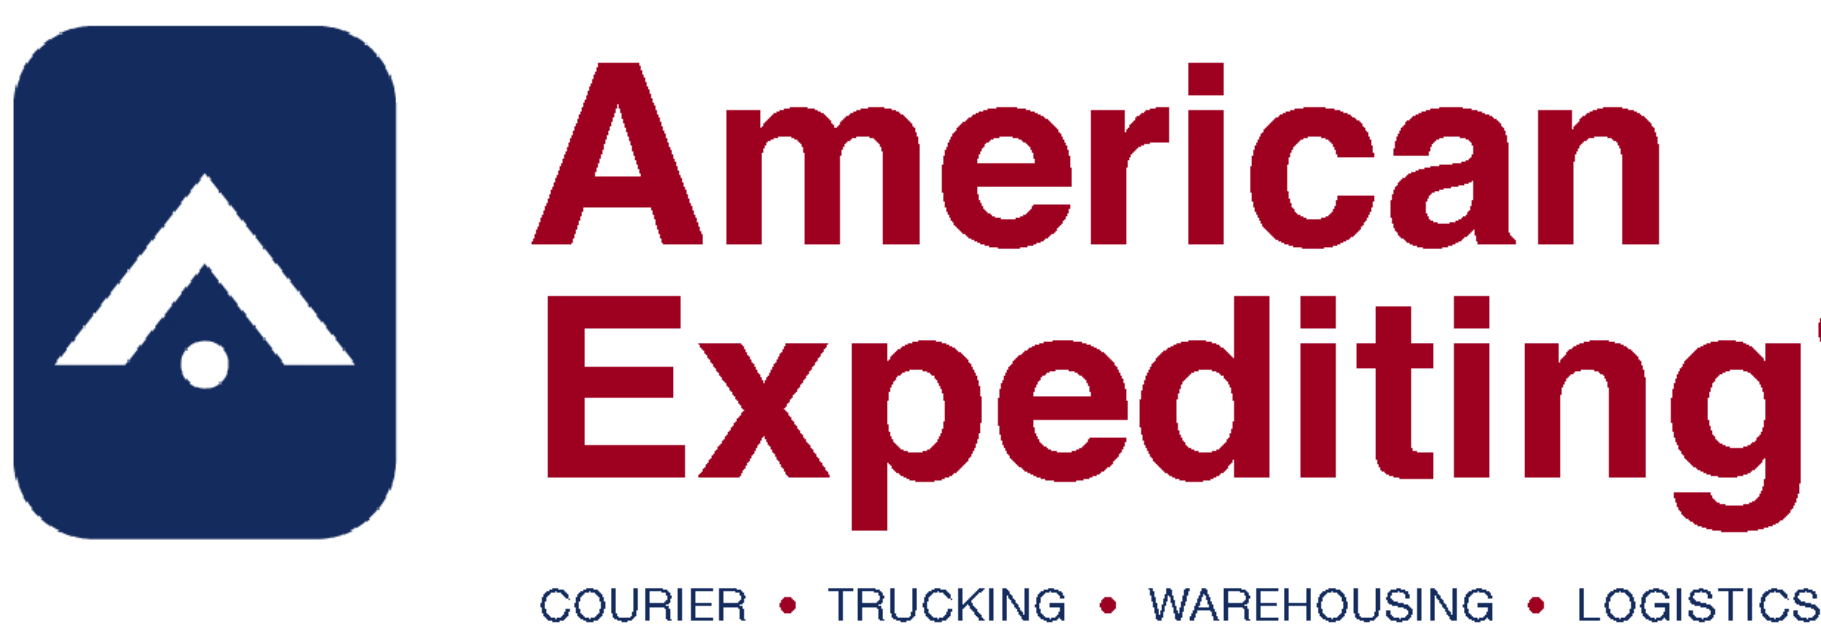 American Expediting Co